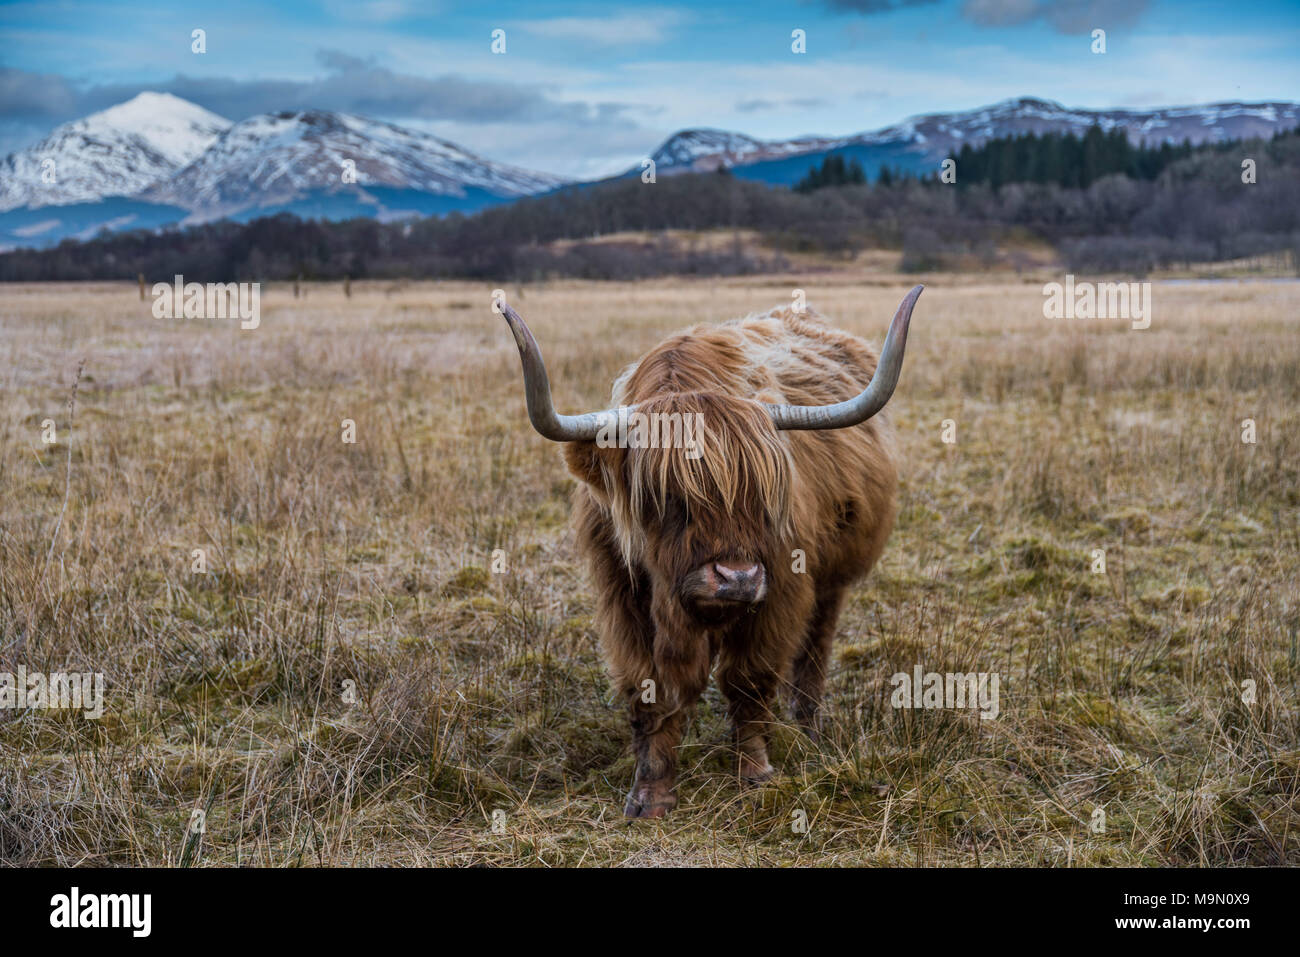 Highland cow in mountain landscape in Scotland - Stock Image